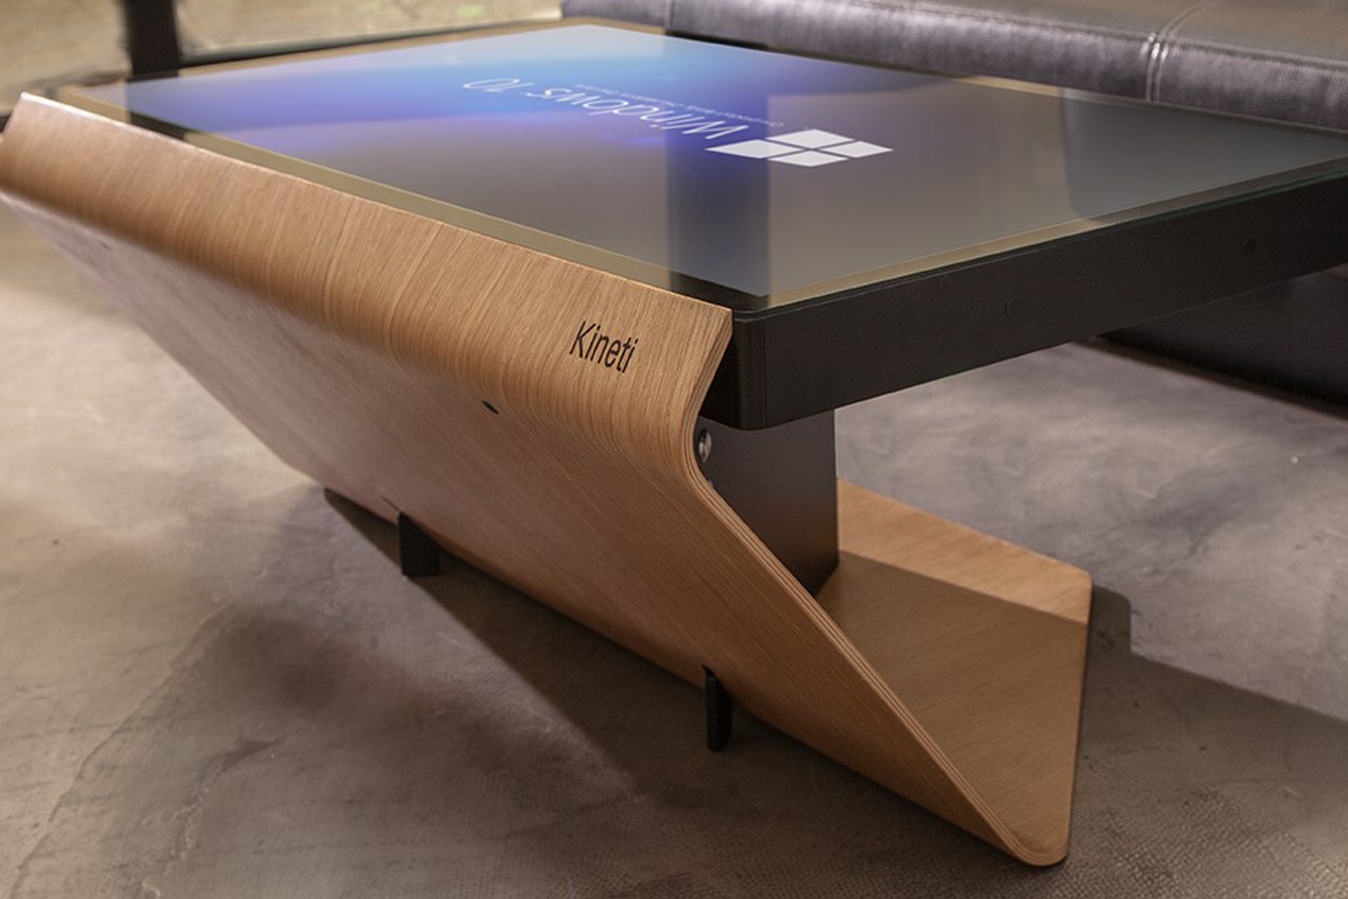 Table tactile Kineti Exclusif Aix en Provence